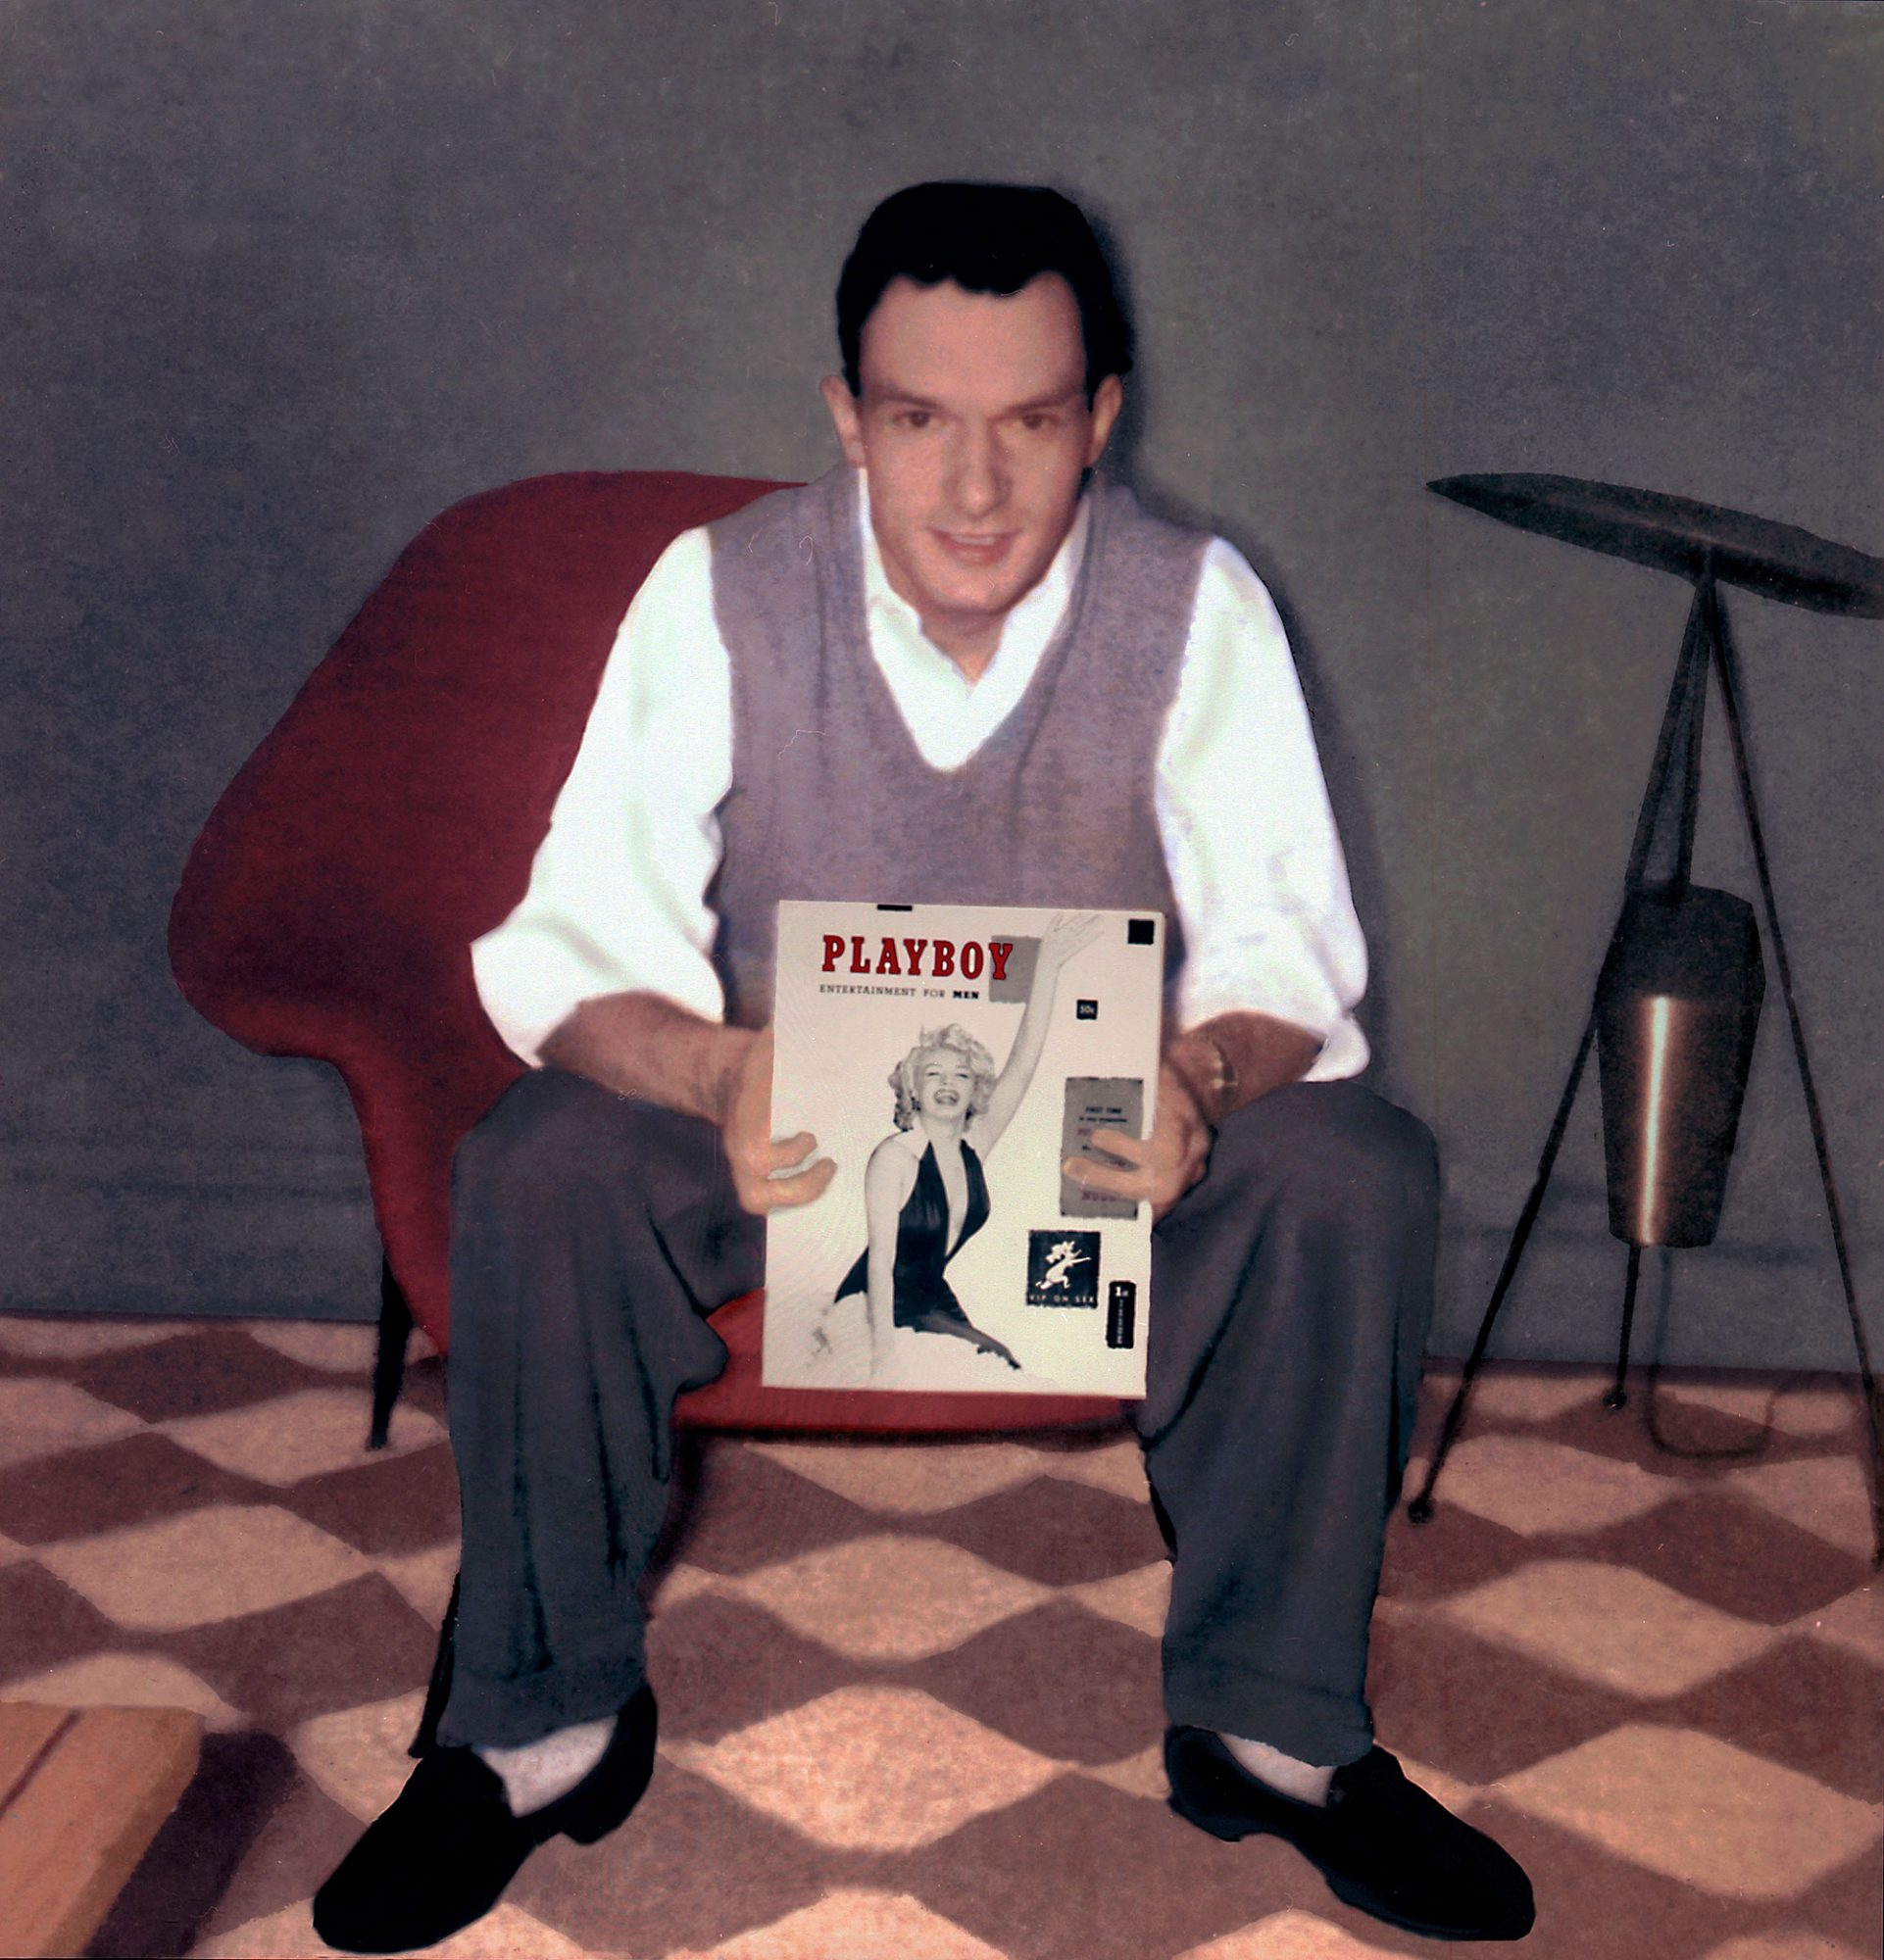 Hugh Hefner with first Playboy issue, 1953_credit Playboy